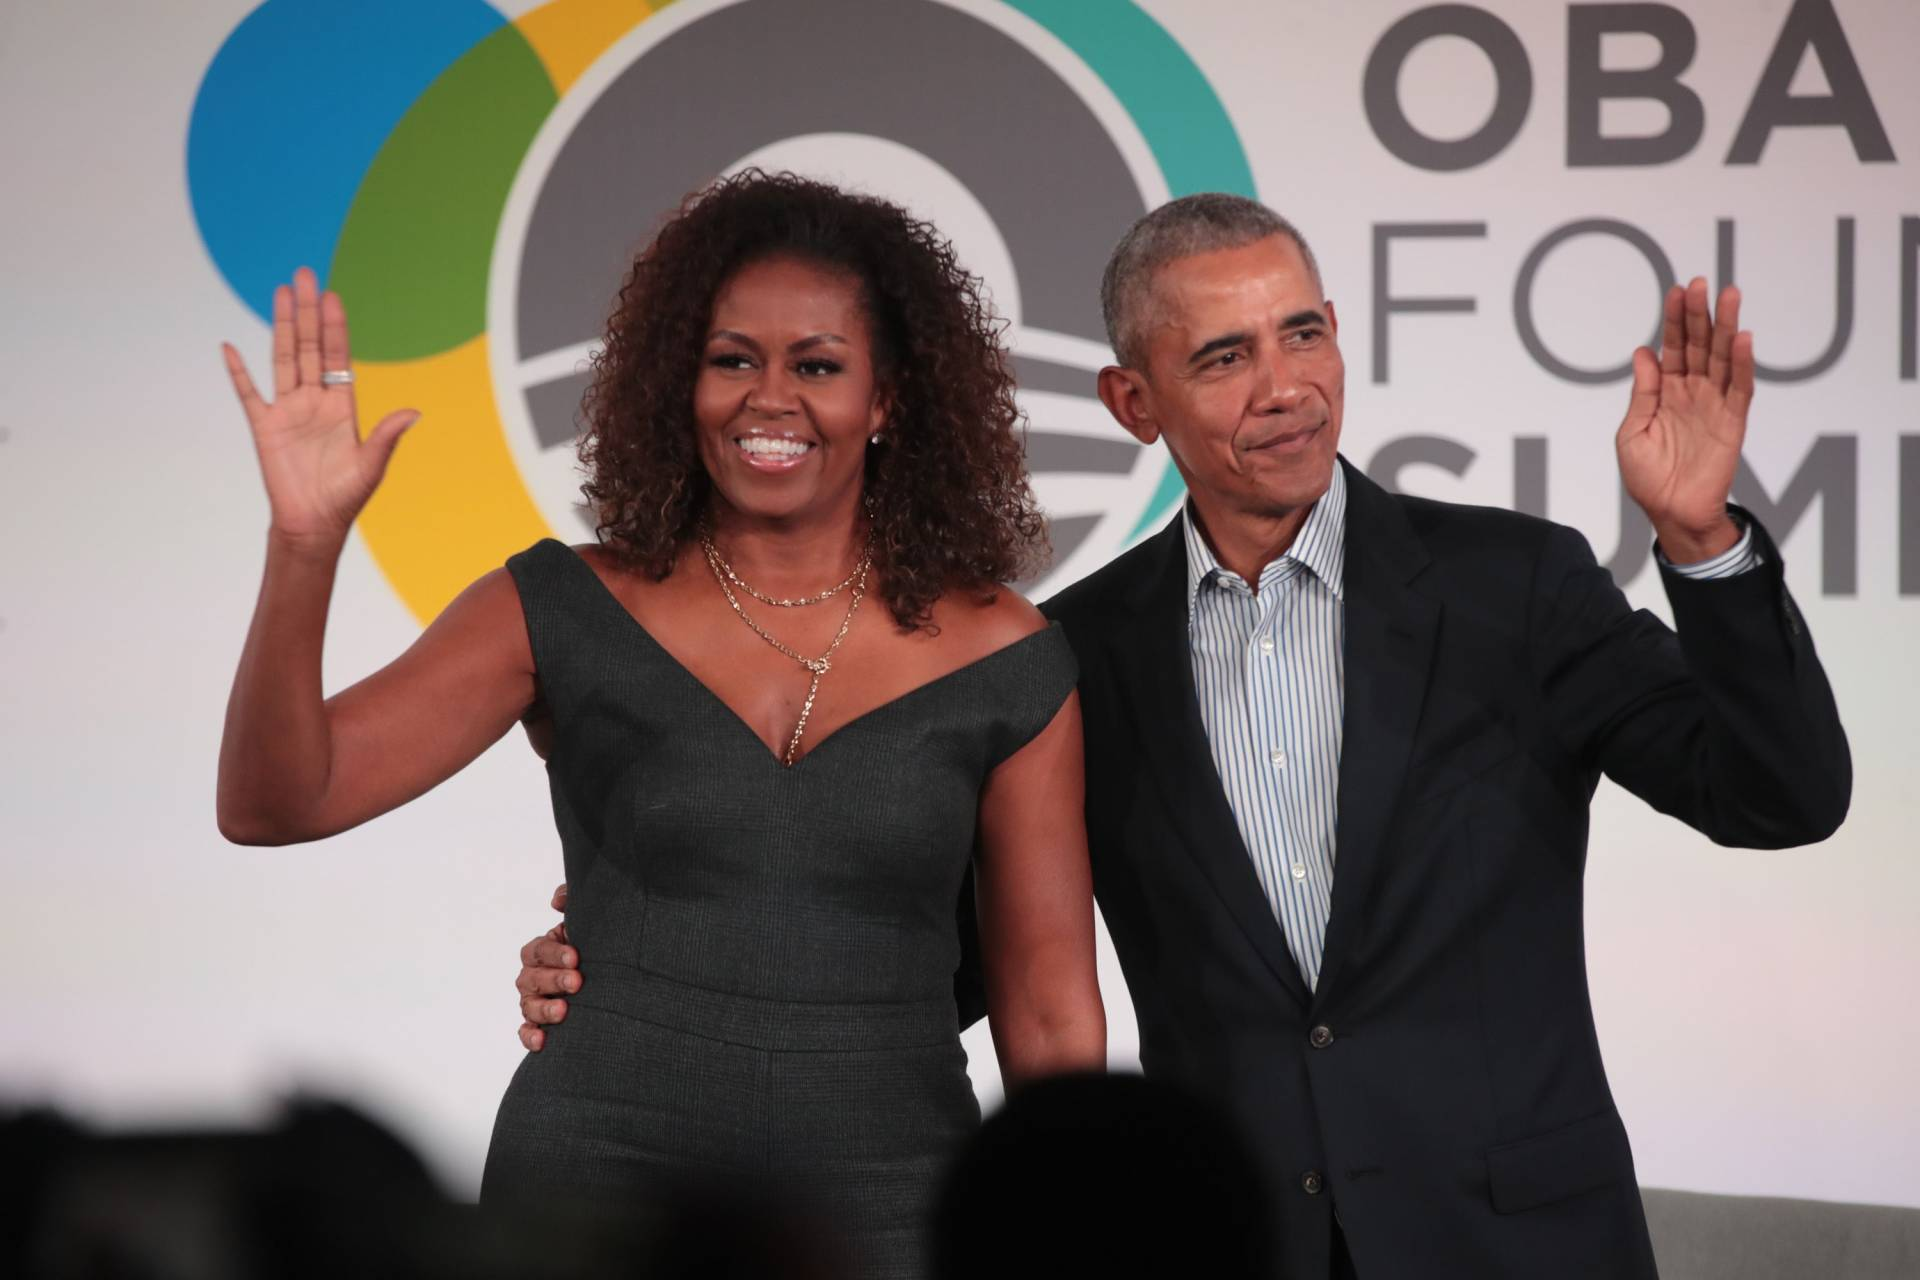 The Obamas will be in Kuala Lumpur in December for the first cohort of the Obama Foundation Leaders: Asia Pacific programme.